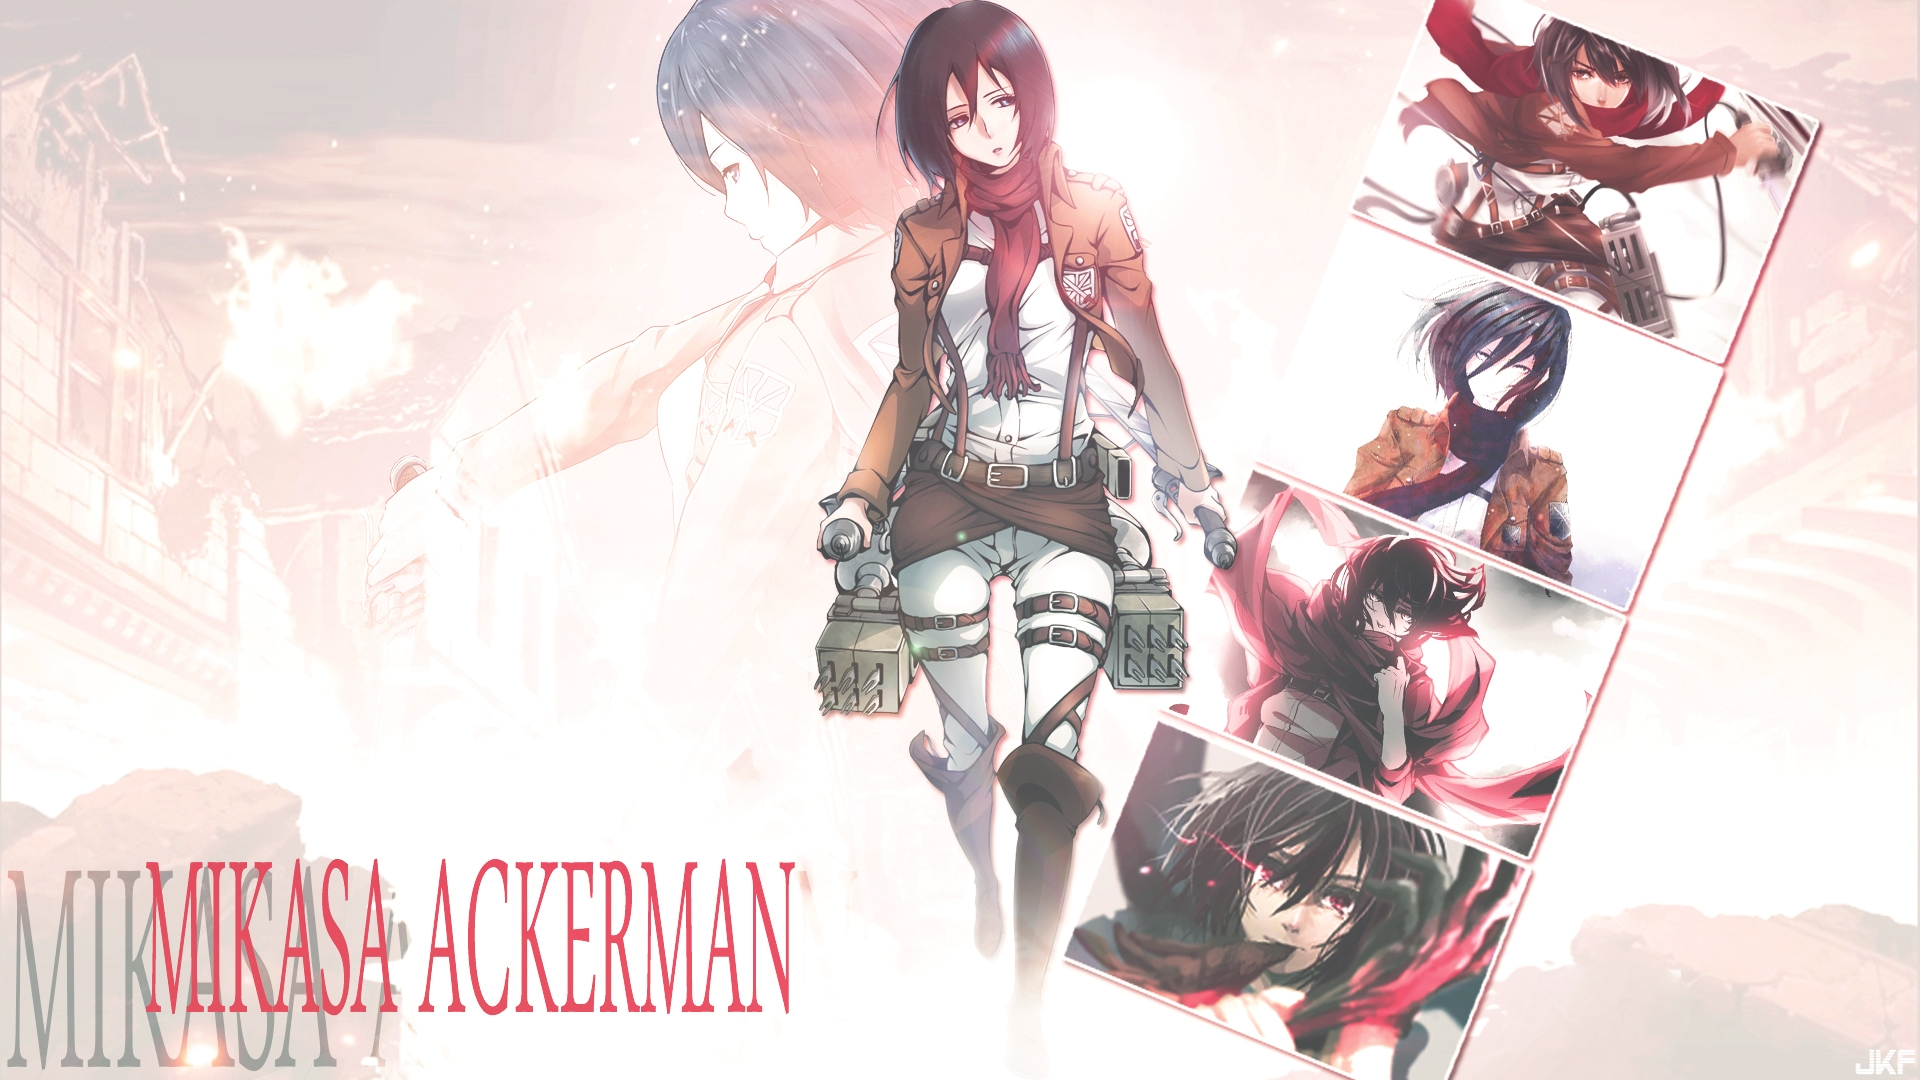 mikasa_ackerman_wallpaper_by_dinocojv-d8pem8e.jpg